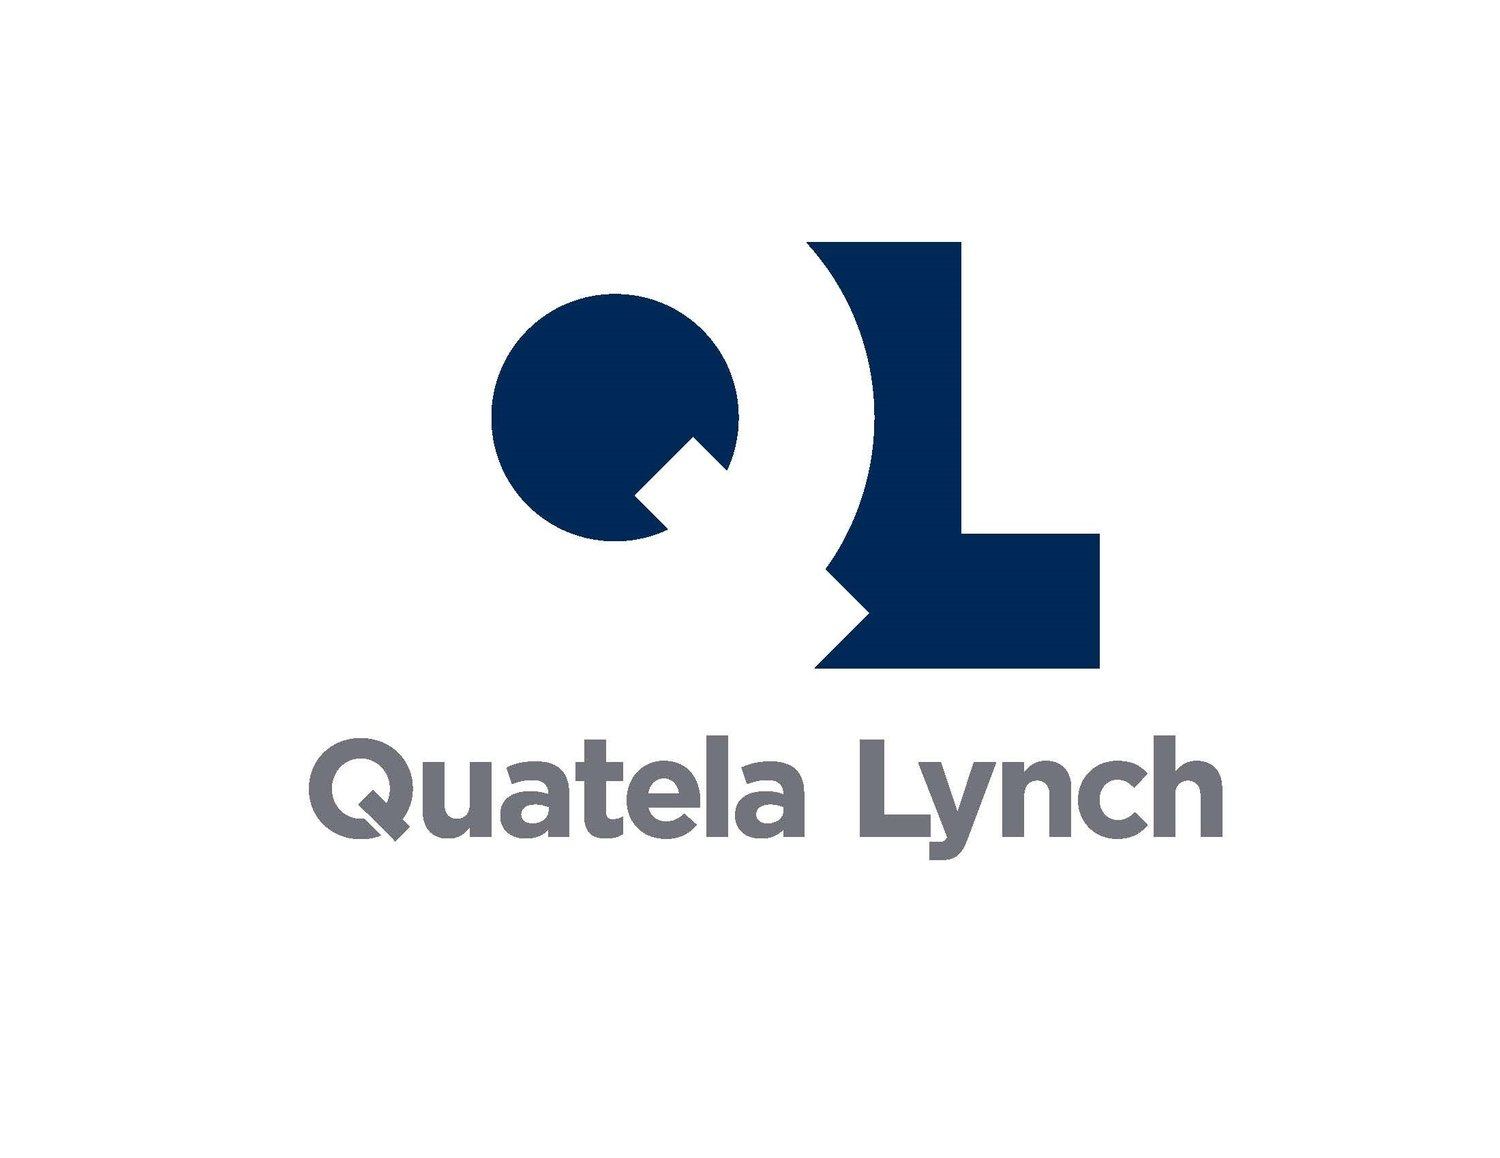 Quatela Lynch LLC